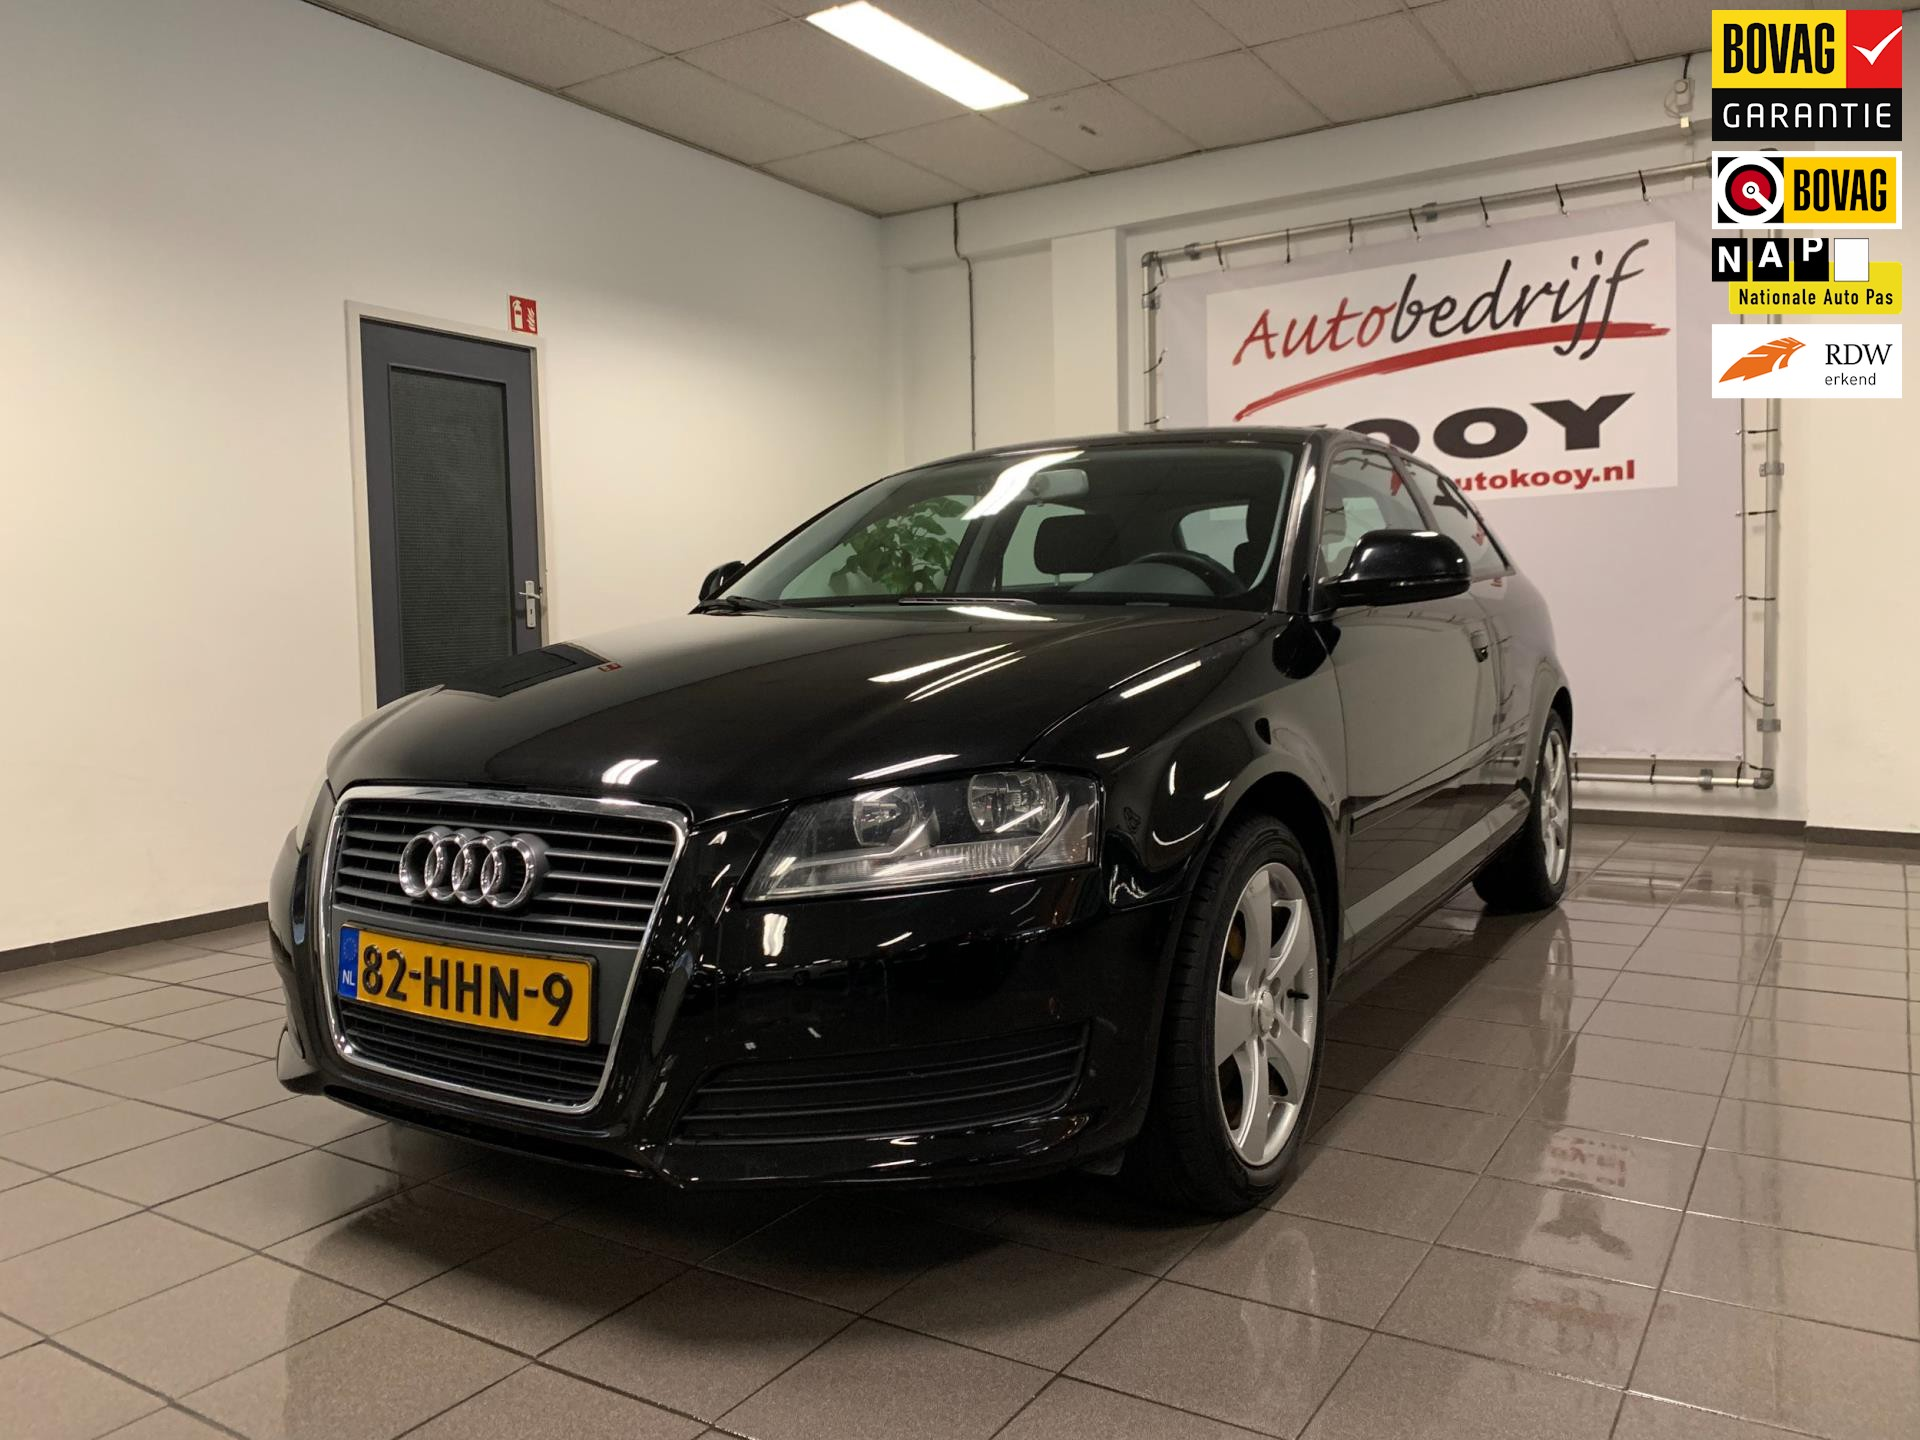 Audi A3 1.6 Attraction Business Edition * Airco-ecc / Cruise control / LM Velgen *